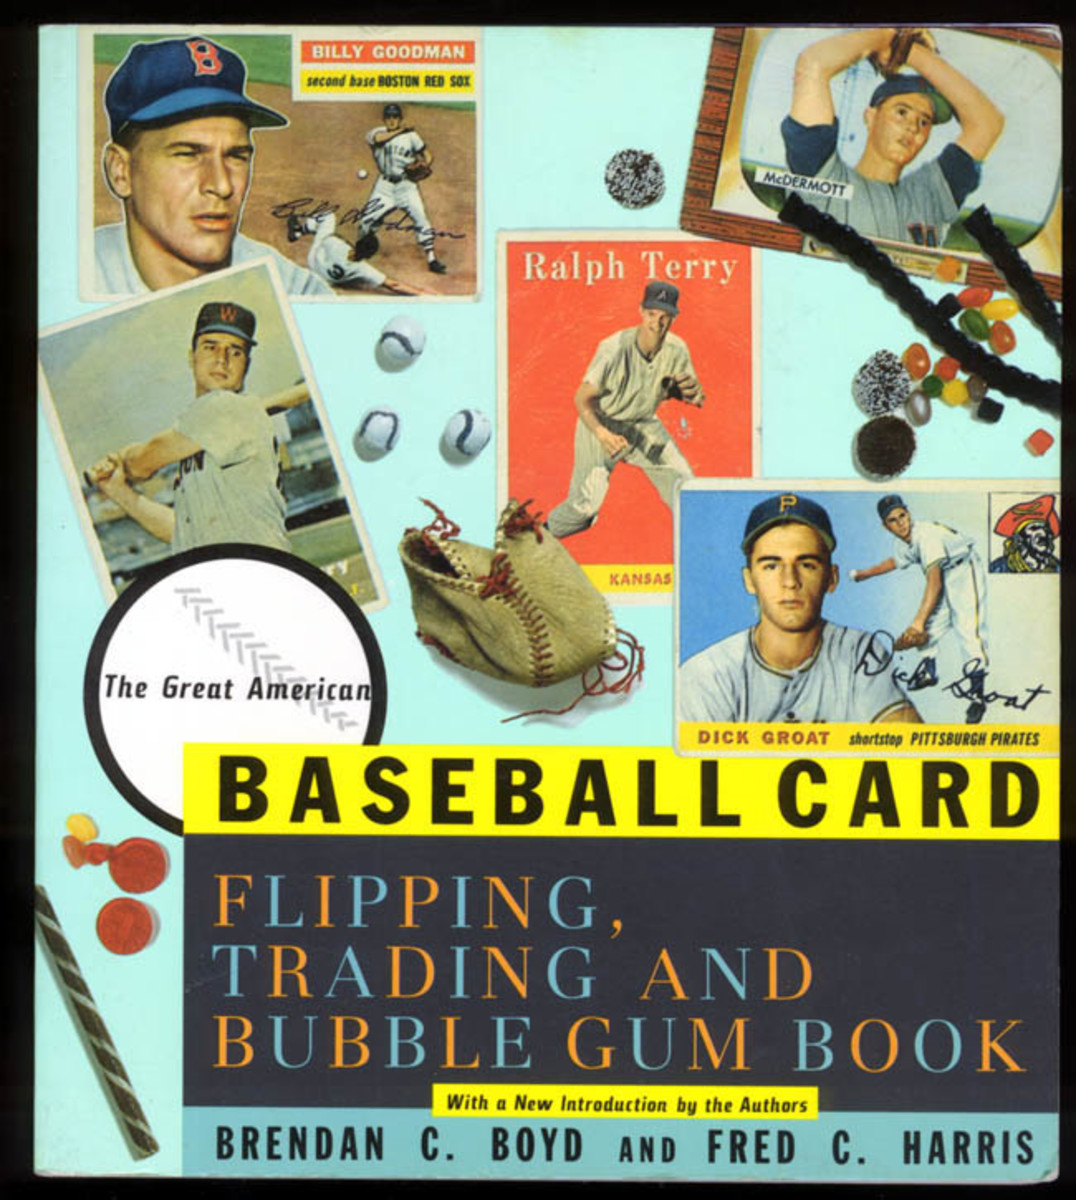 Boyd's and Harris' baseball card book is still as informative and entertaining today as when first published more than 40 years ago. (1991 reissue cover shown)